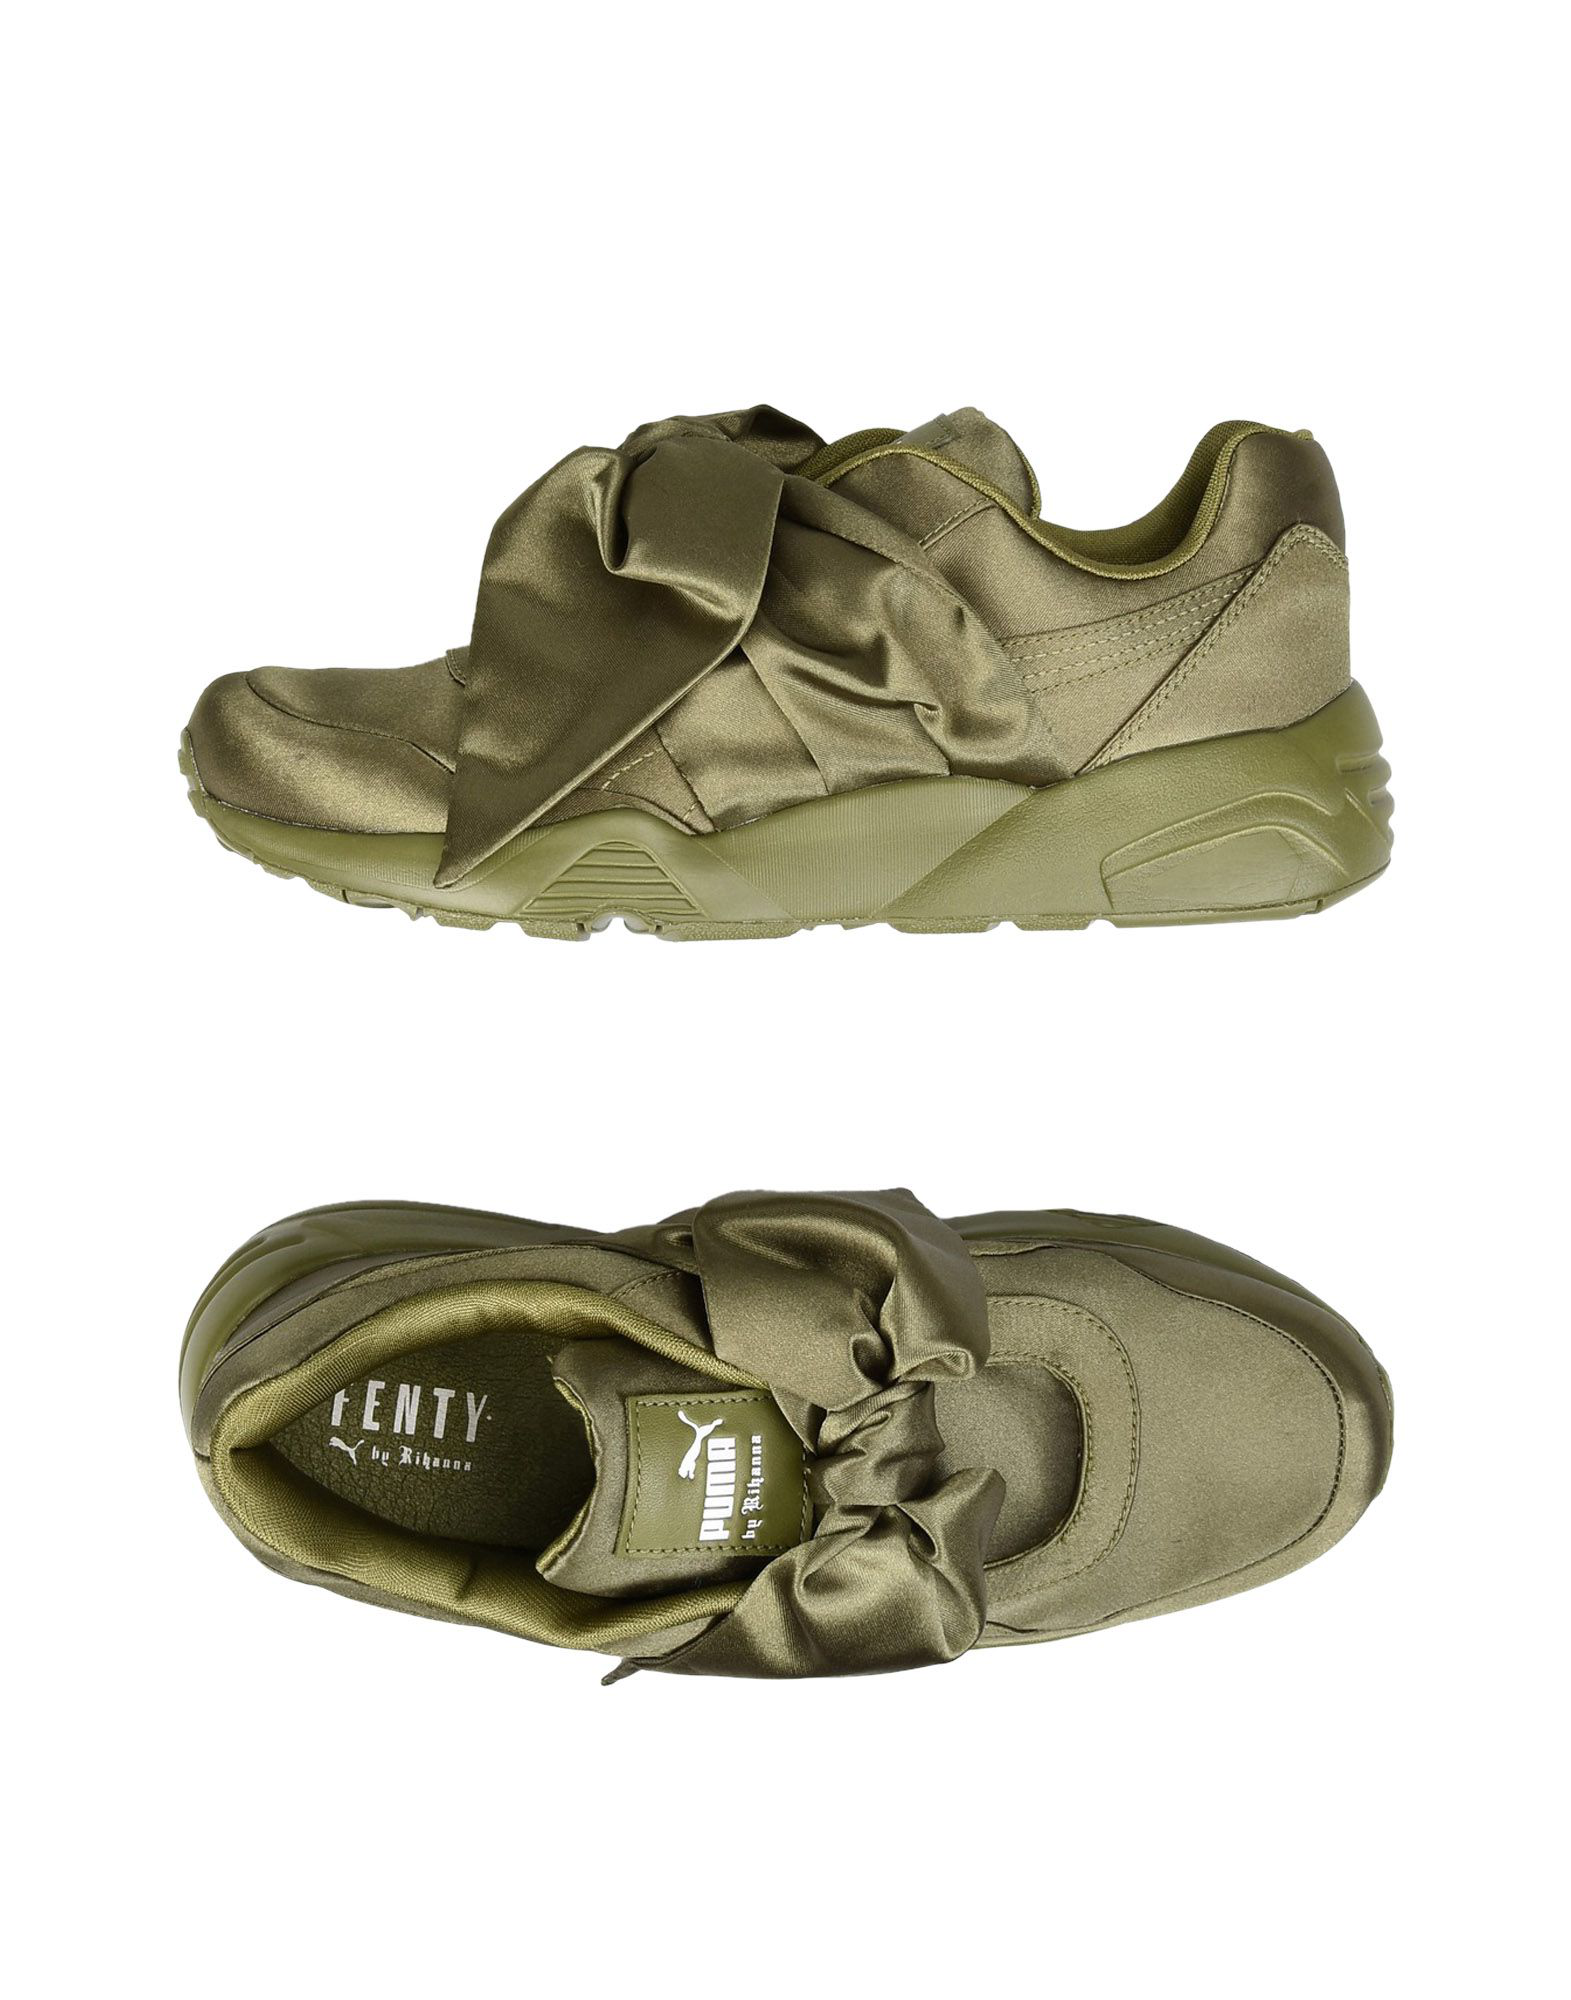 brand new 03d54 b9d9f Sneakers in Military Green